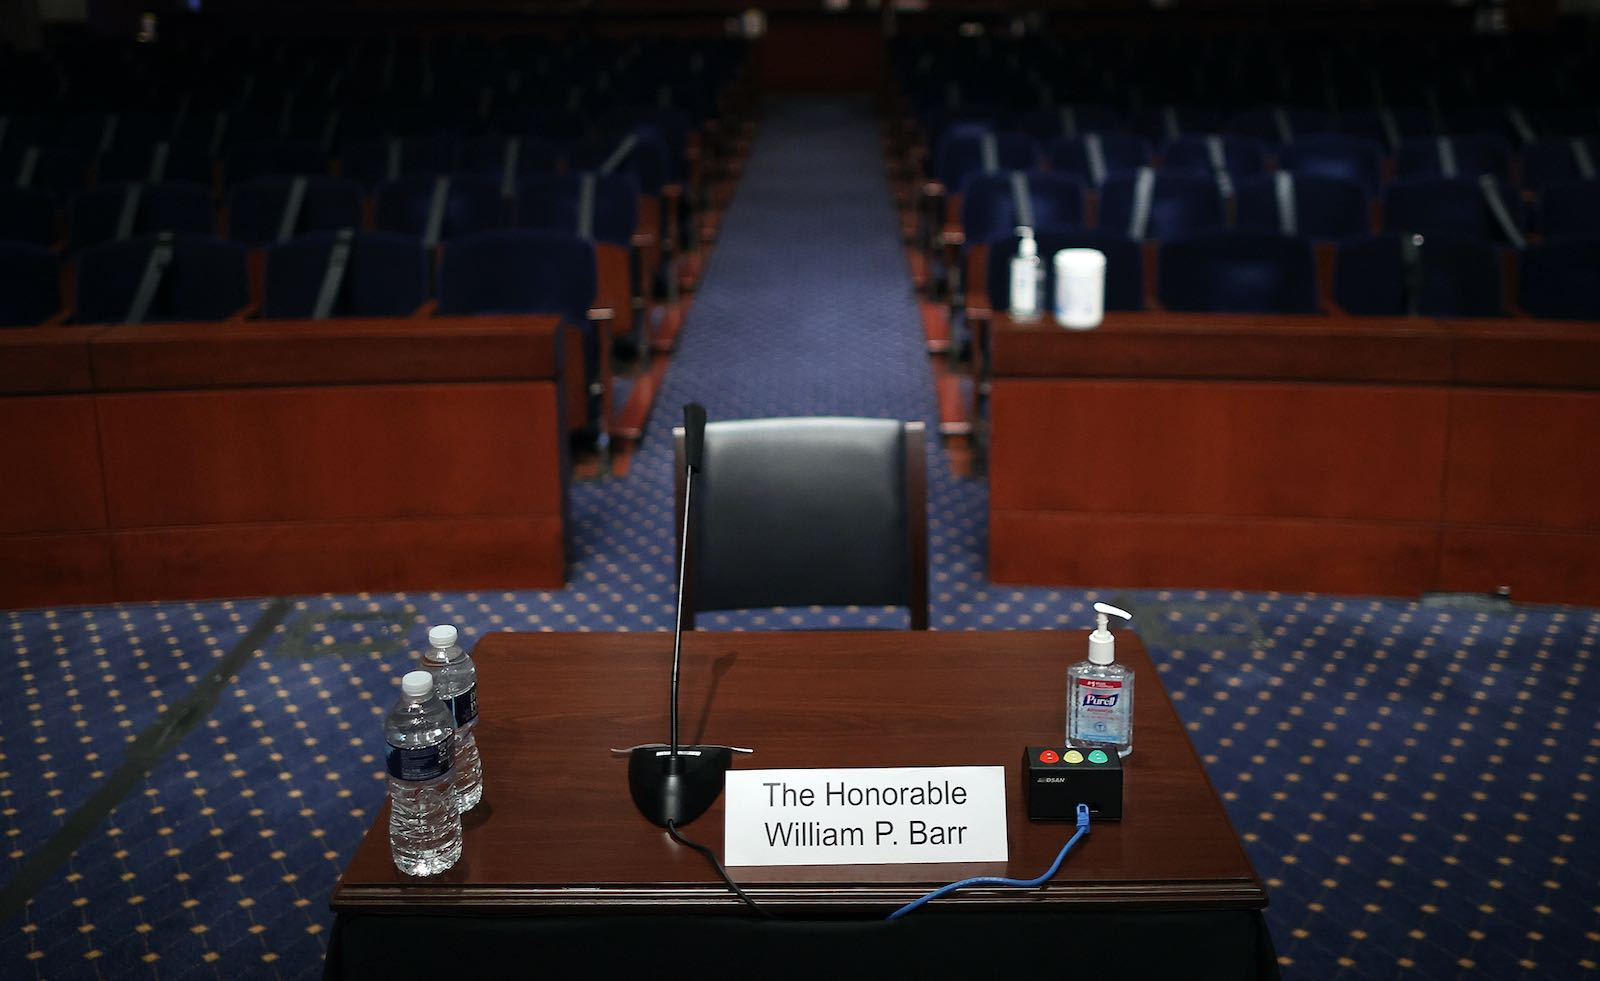 A congressional chamber prepared for a session of the House Judiciary Committee